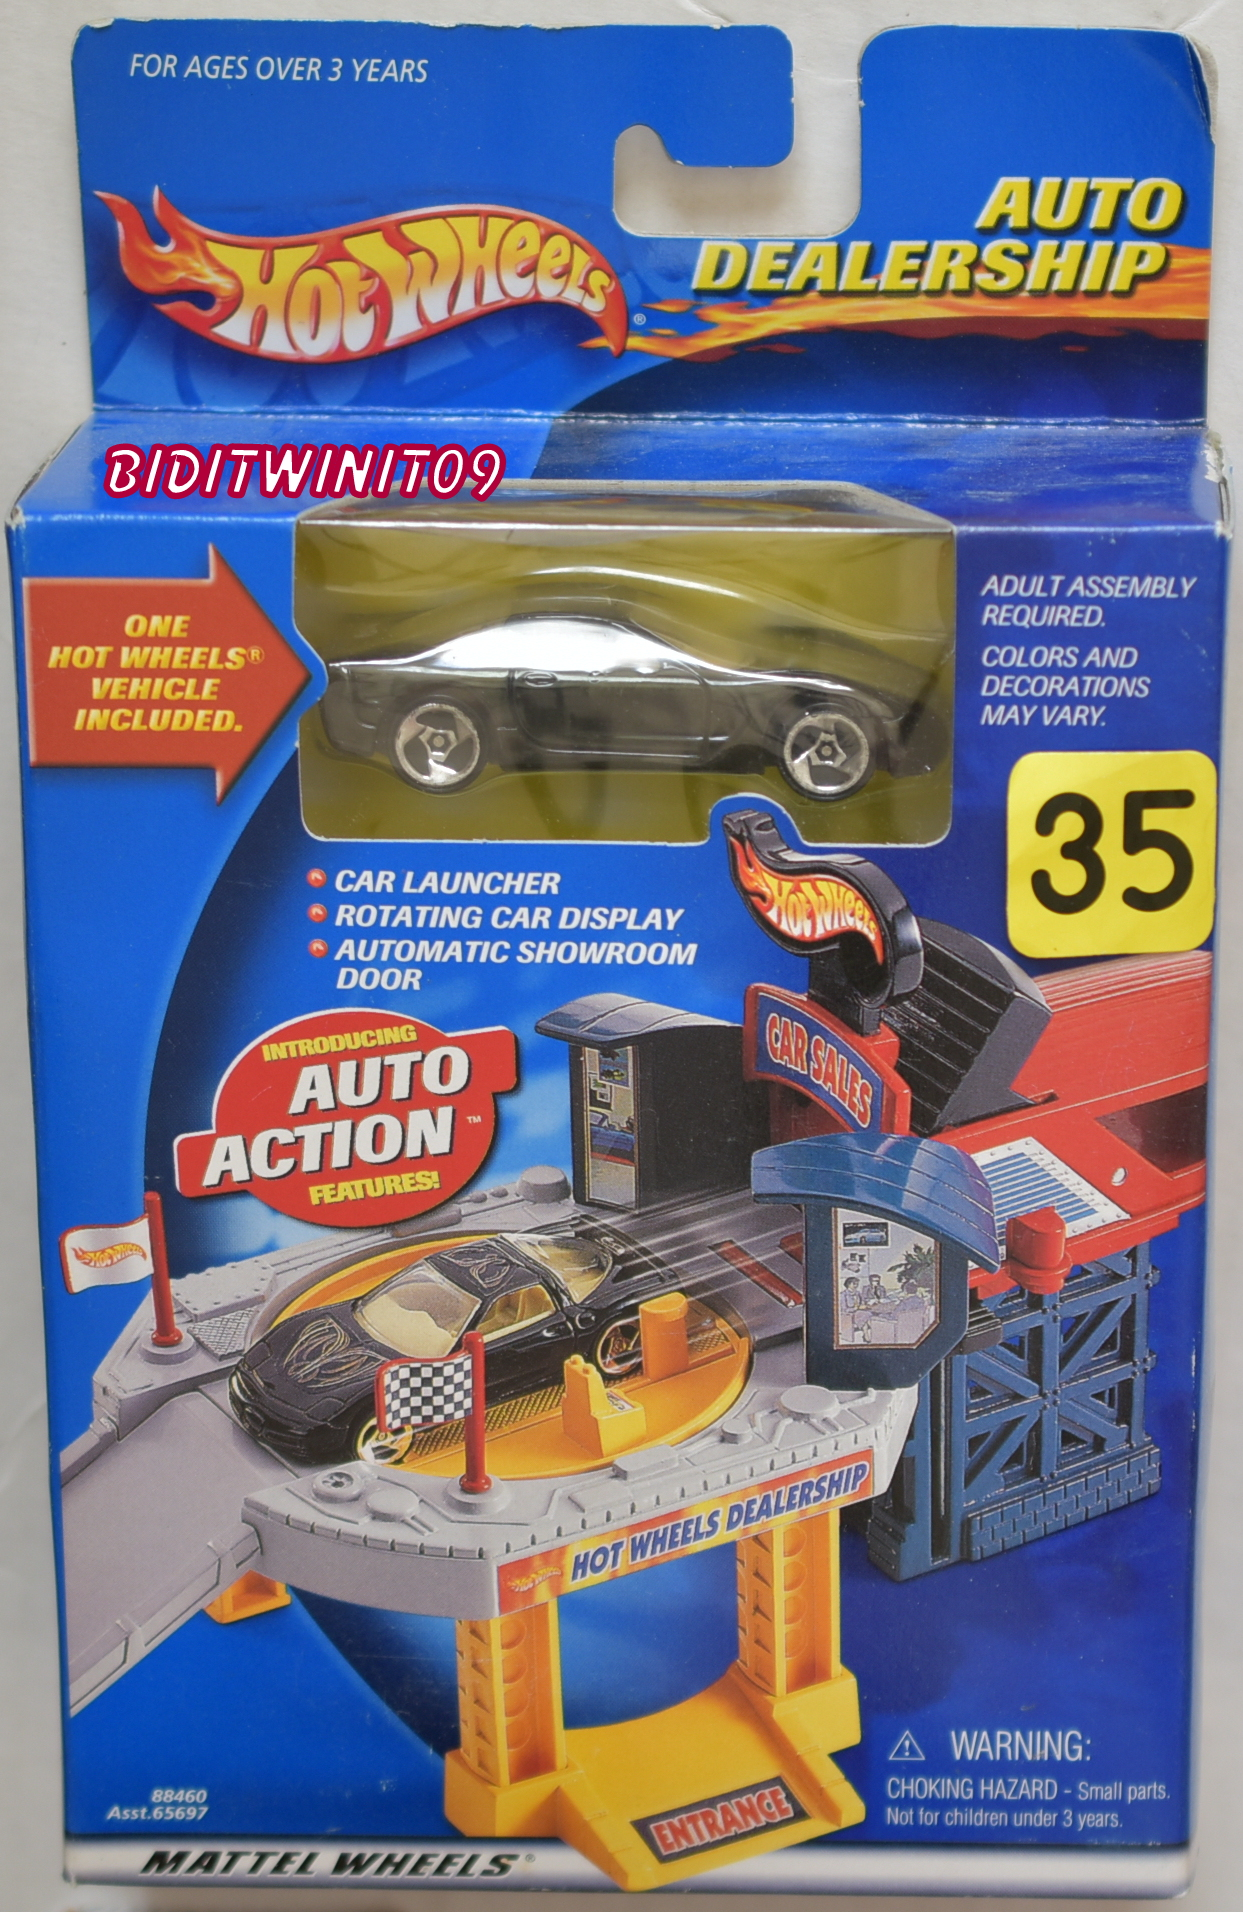 HOT WHEELS AUTO DEALERSHIP CORVETTE